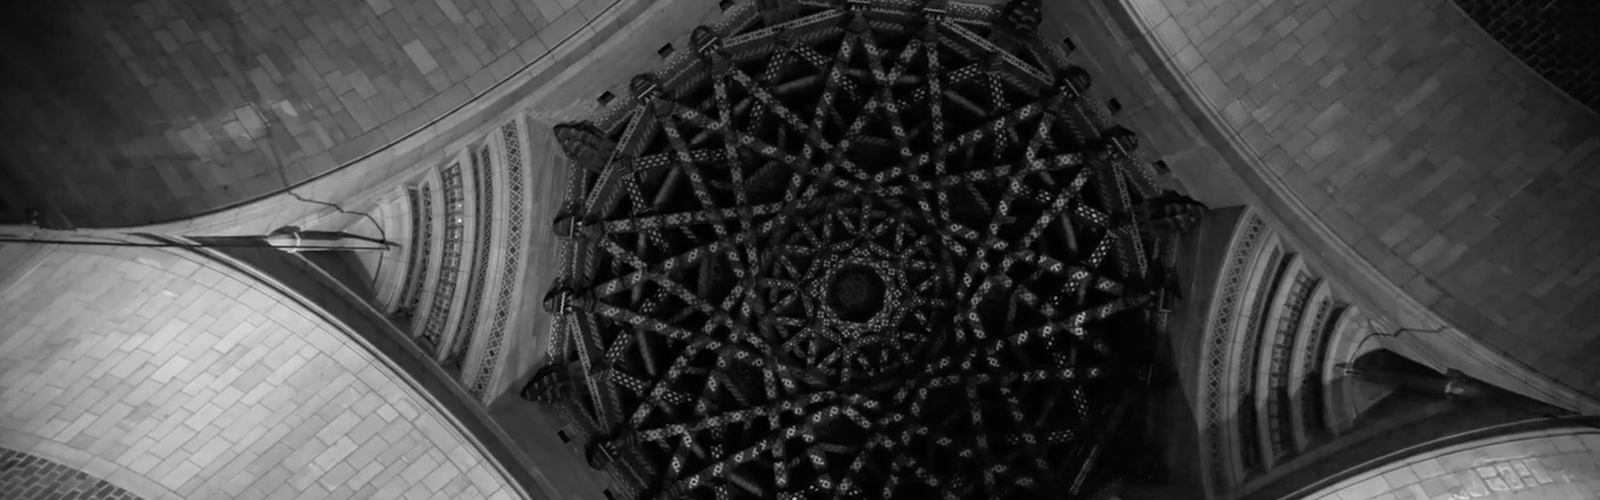 st-barts-ceiling-1